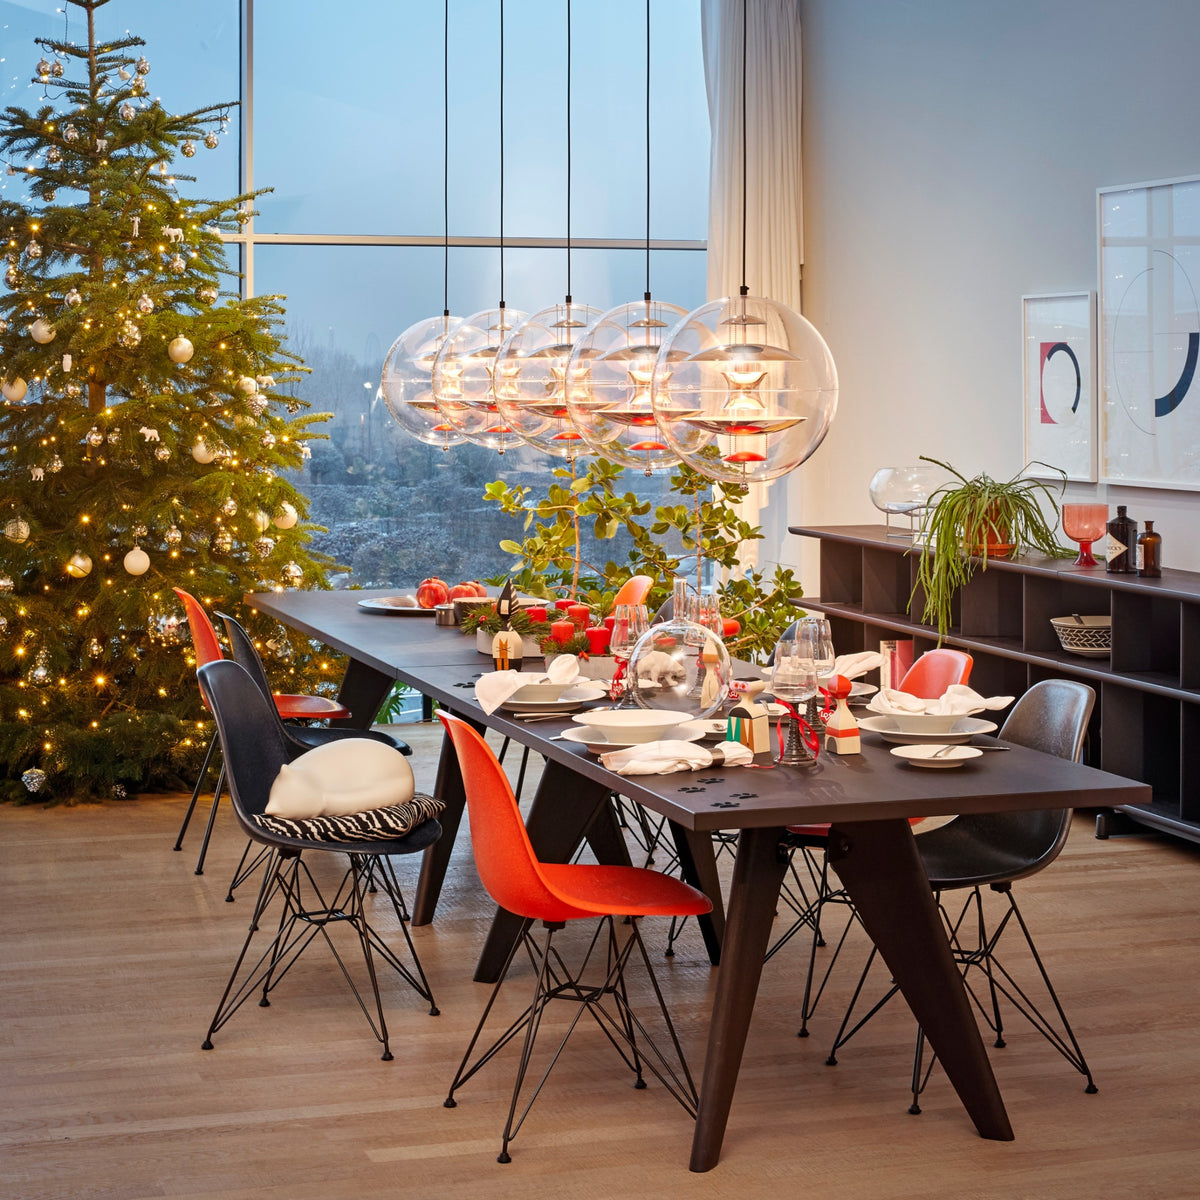 Vitra Eames Plastic Side Chair DSR Powder Coated for Outdoor Use. Christmas Dinner Setting